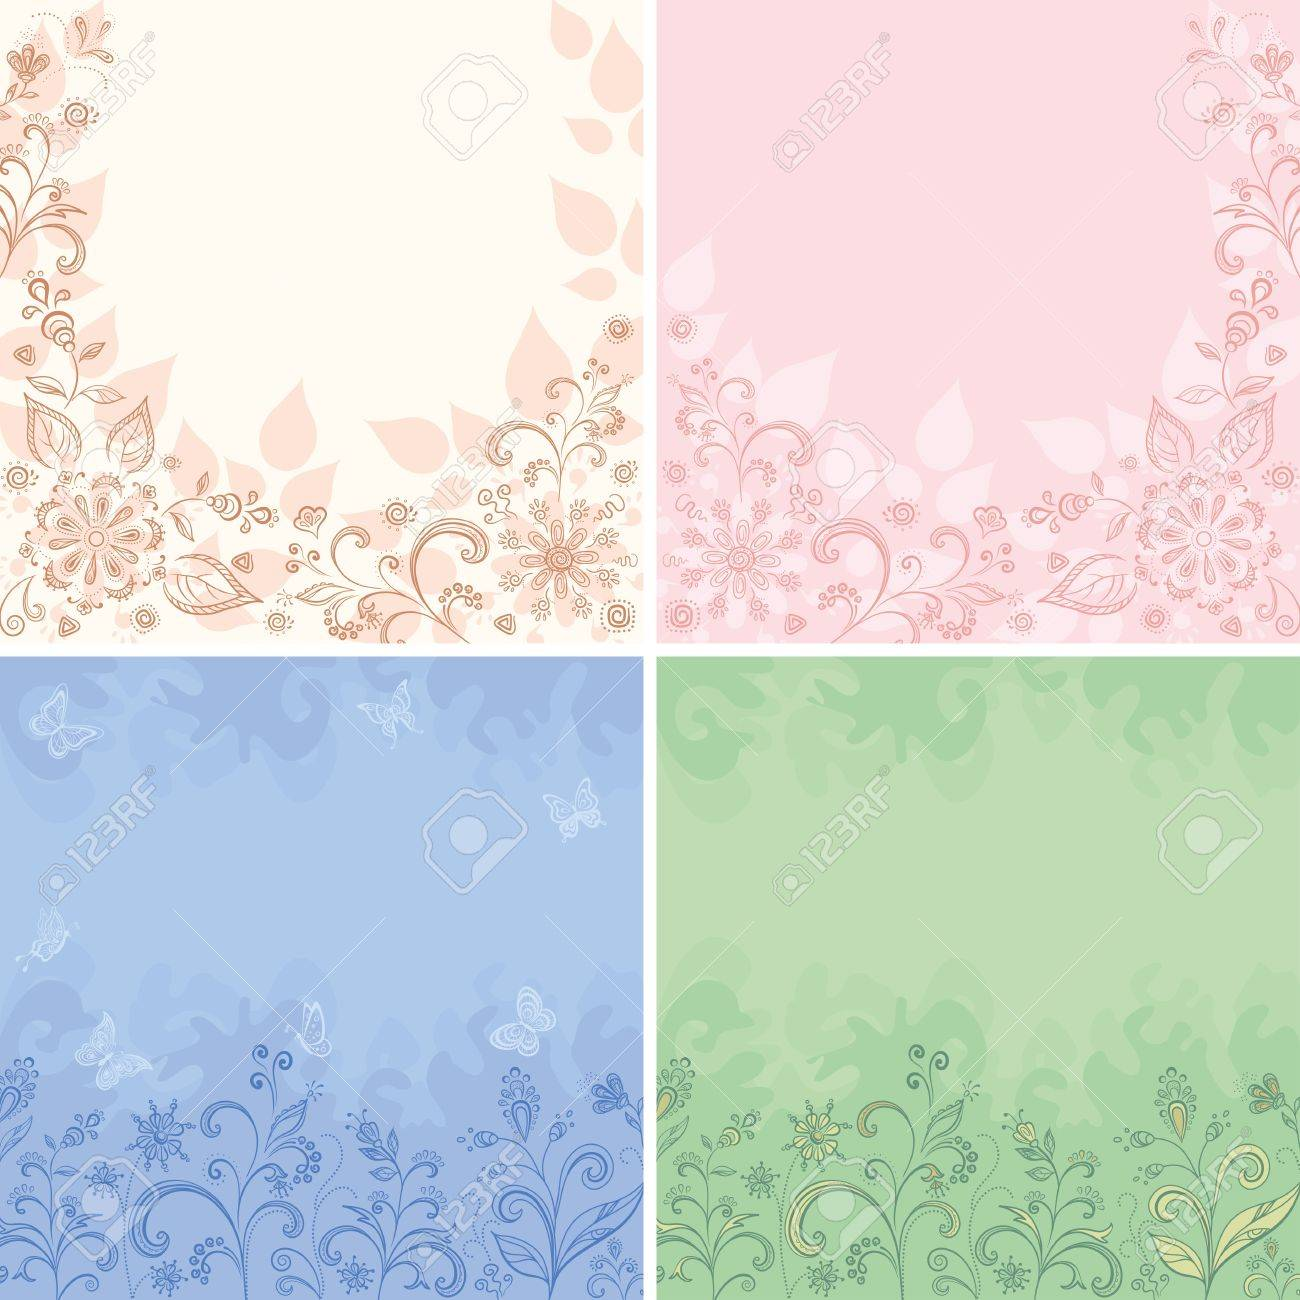 Set Abstract Floral Backgrounds Symbolical Flowers Butterflies